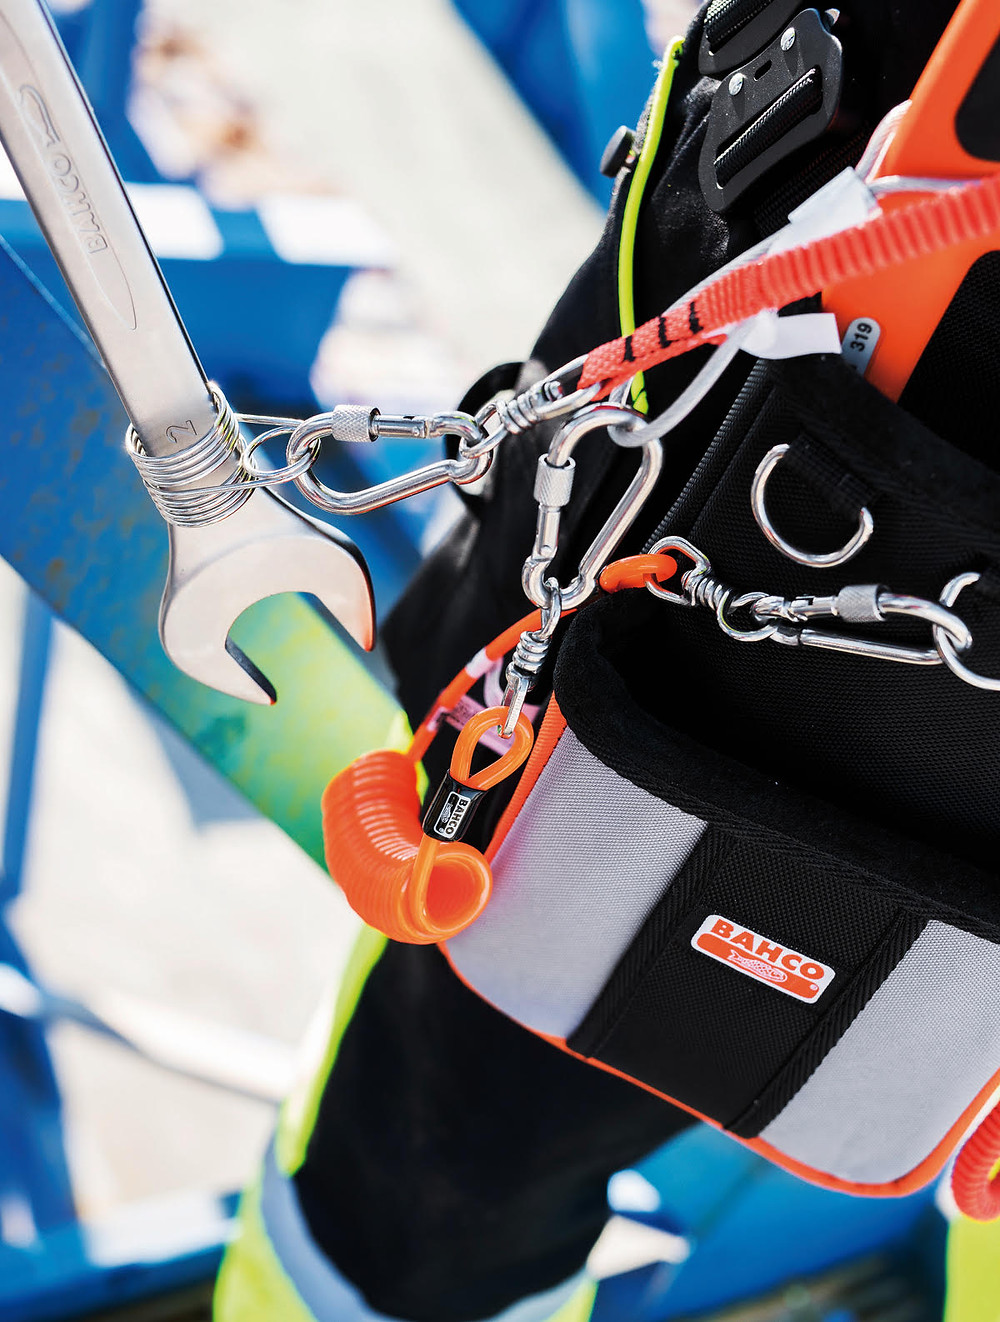 Bahco carabiners, tool fixings and lanyards guard against dropping tools from height